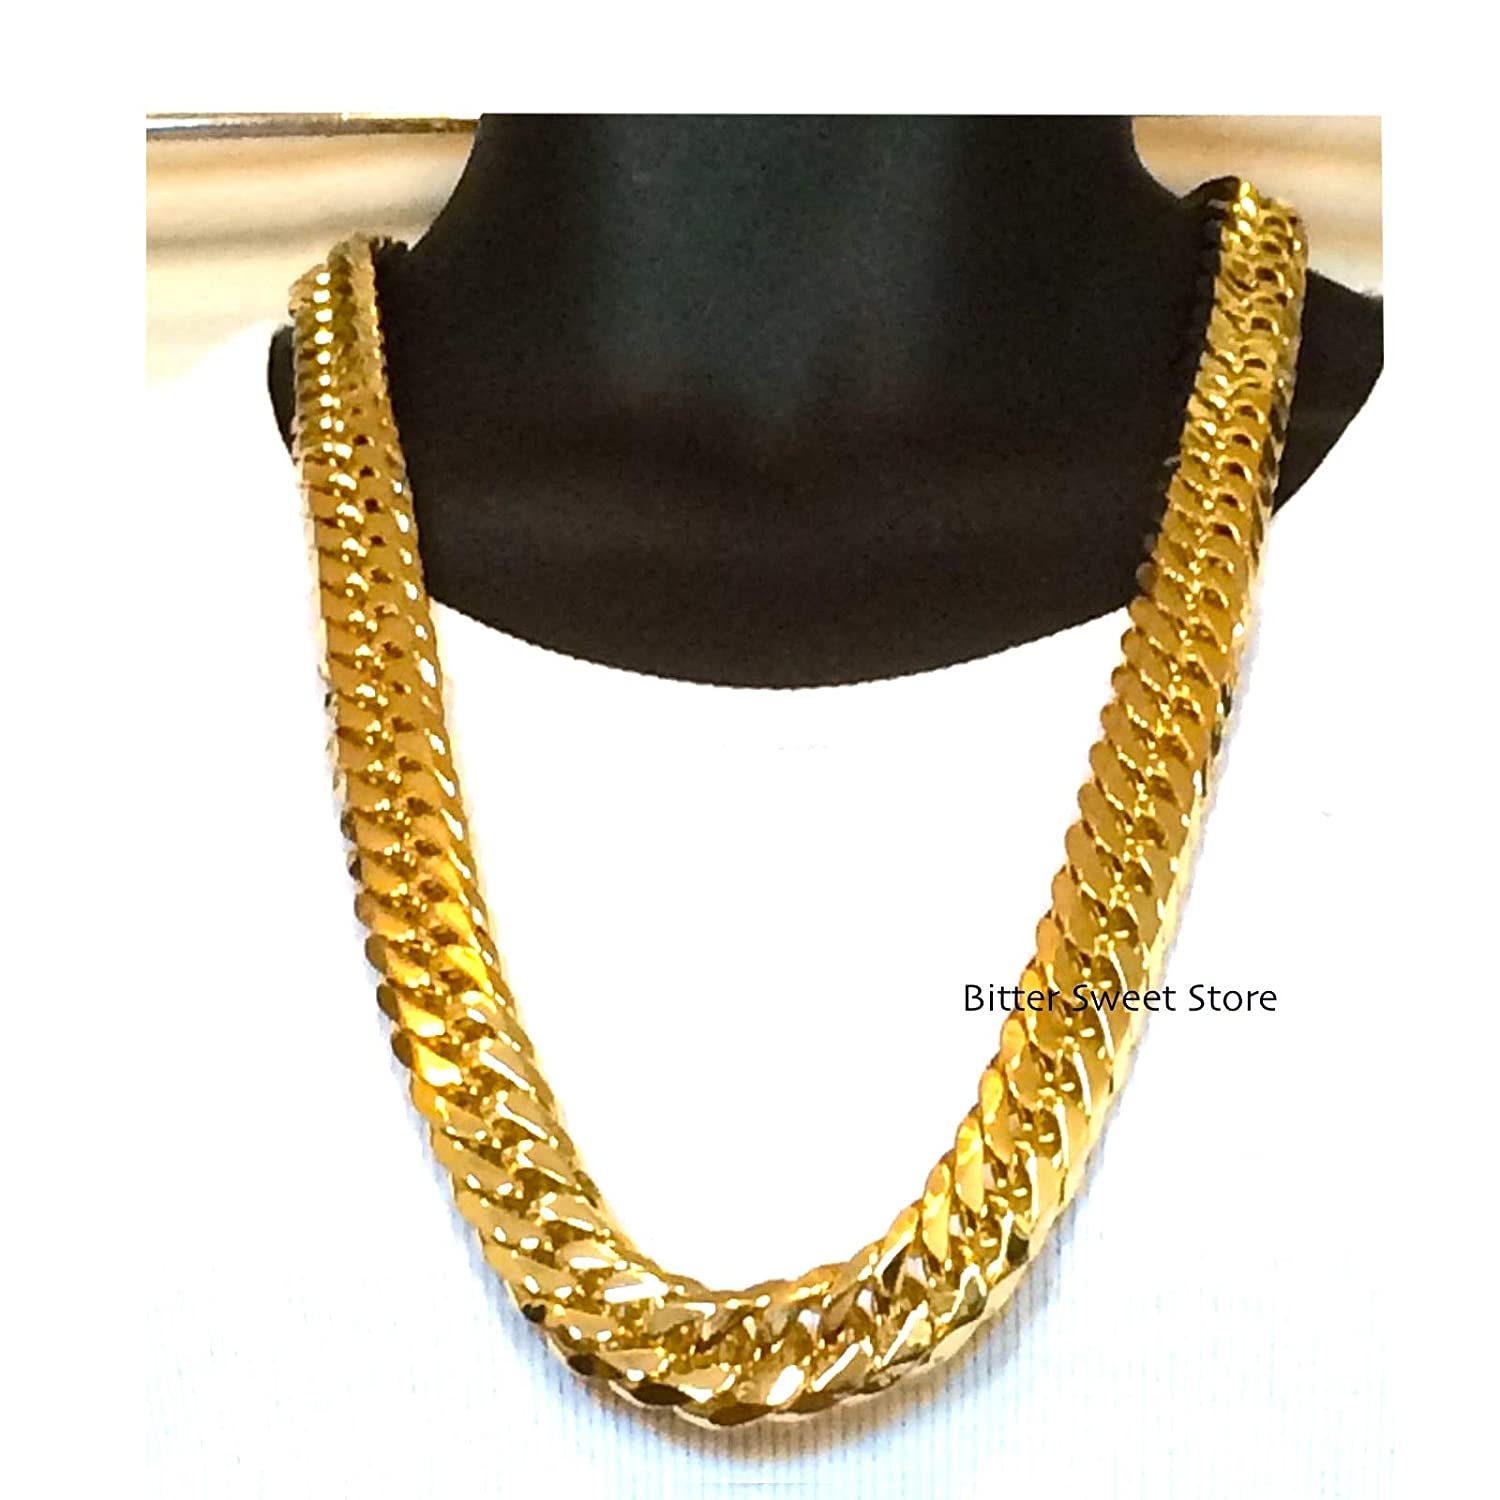 d2fd3b8fc5707 Solid 18mm 14k Yellow Gold Finish Heavy Stainless Steel Miami Cuban Link  Chain Necklace 32